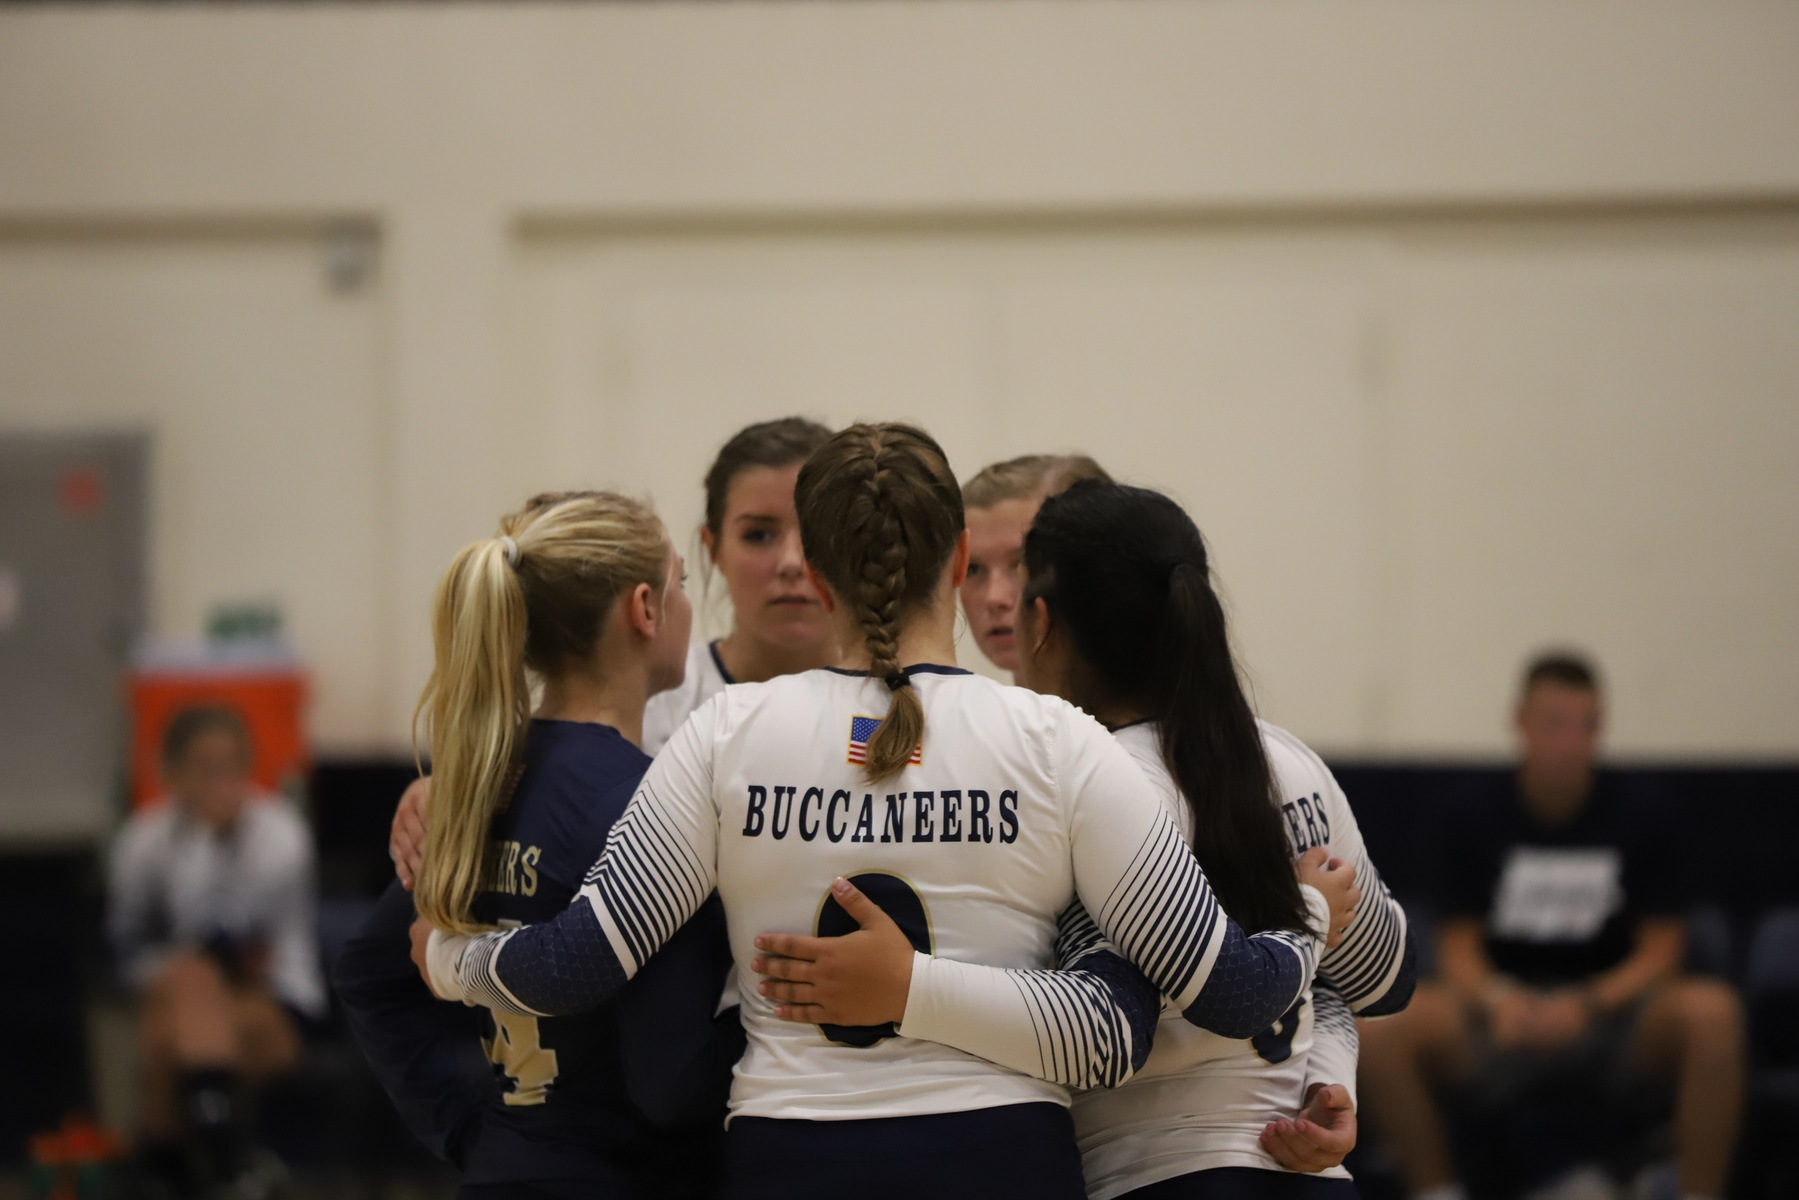 Buccaneers Fall to Vikings in Straight Set on the Road